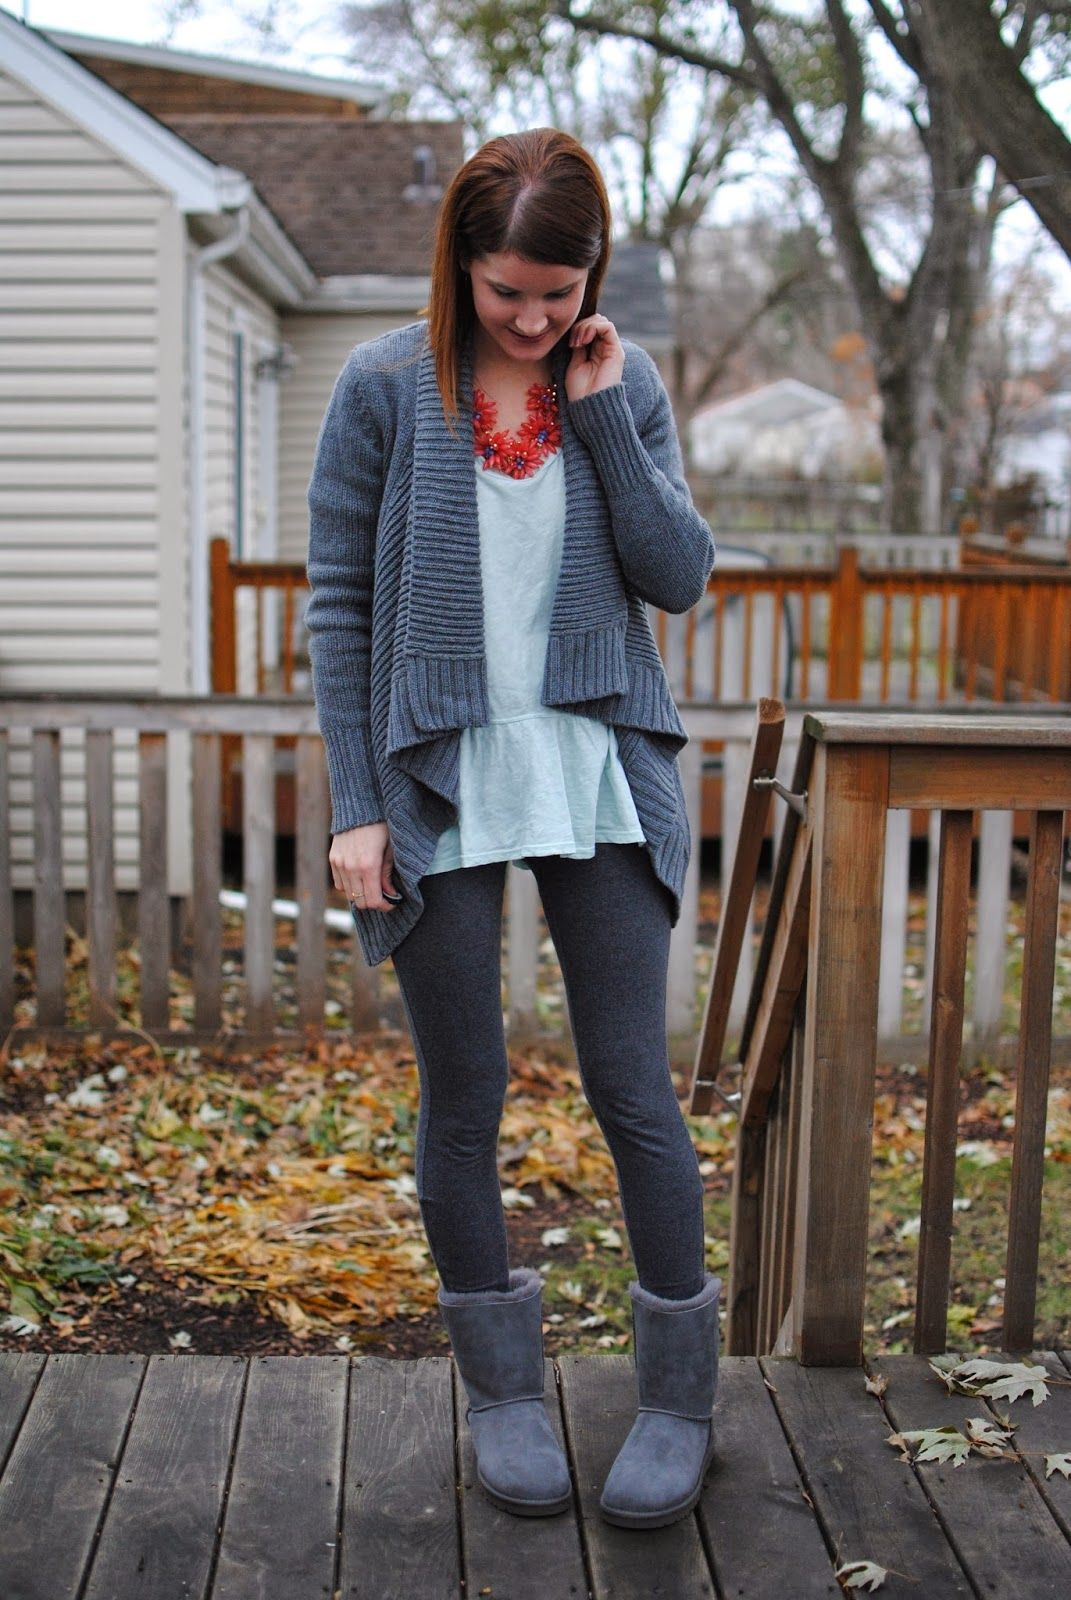 Pin by Jennifer on UGG Boots Rock | Cute winter outfits ...